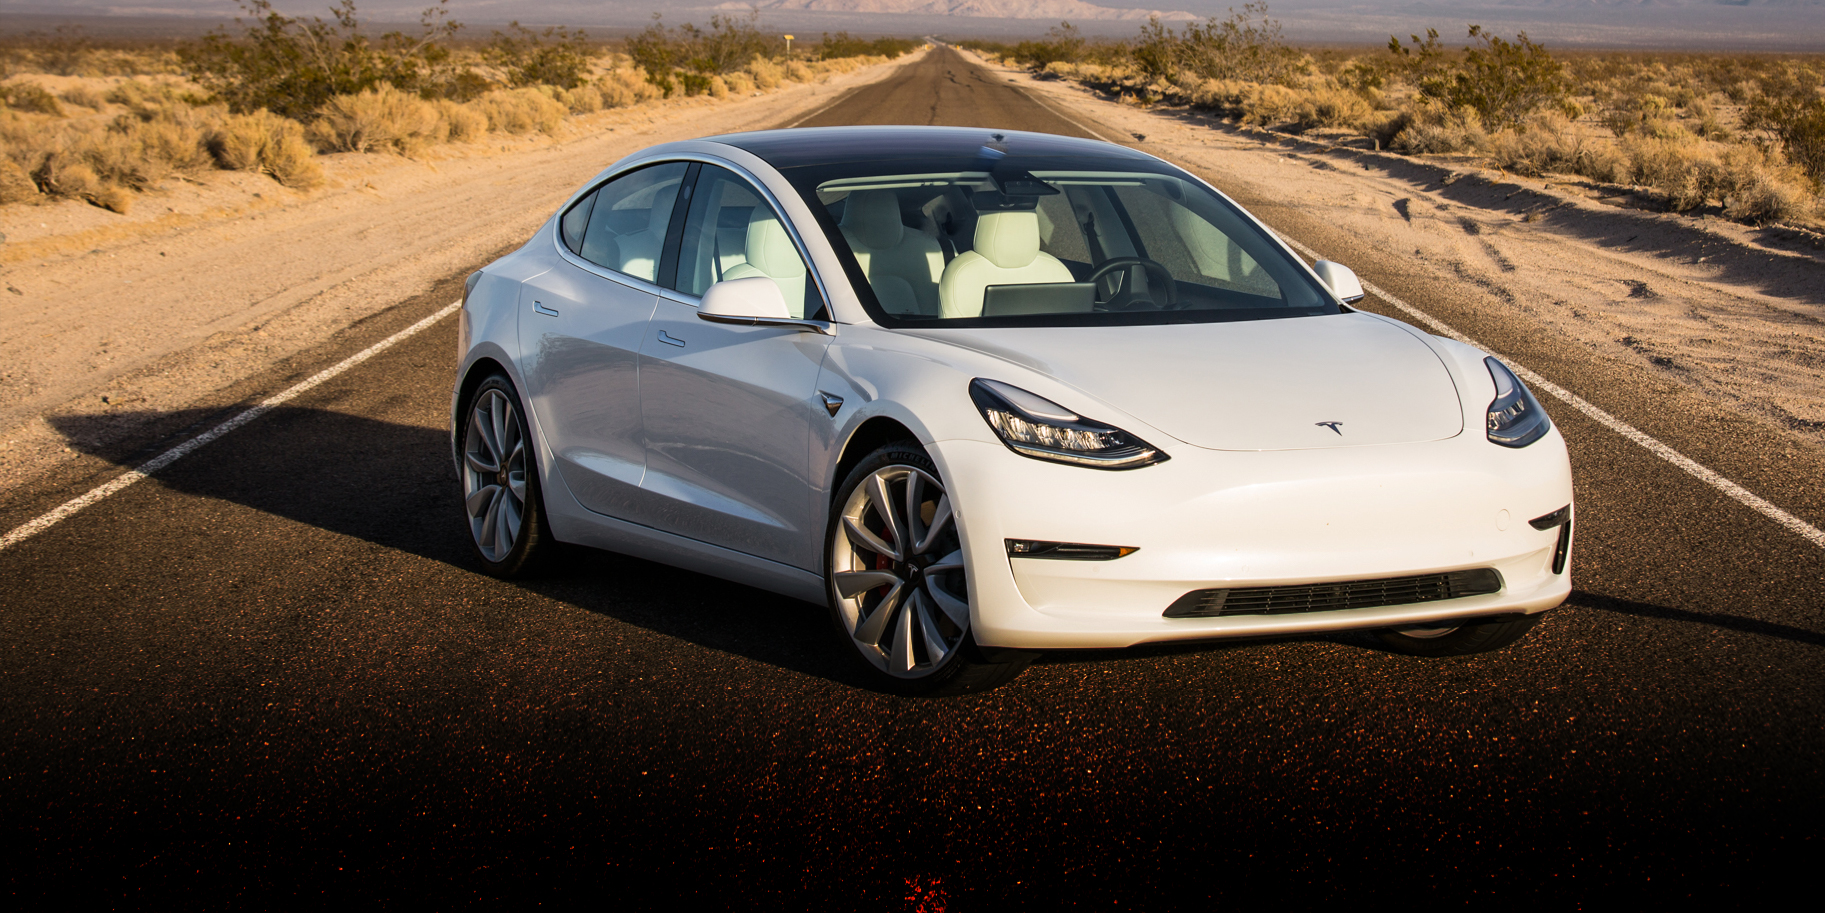 2019 Tesla Model 3 Performance review: International drive | CarAdvice